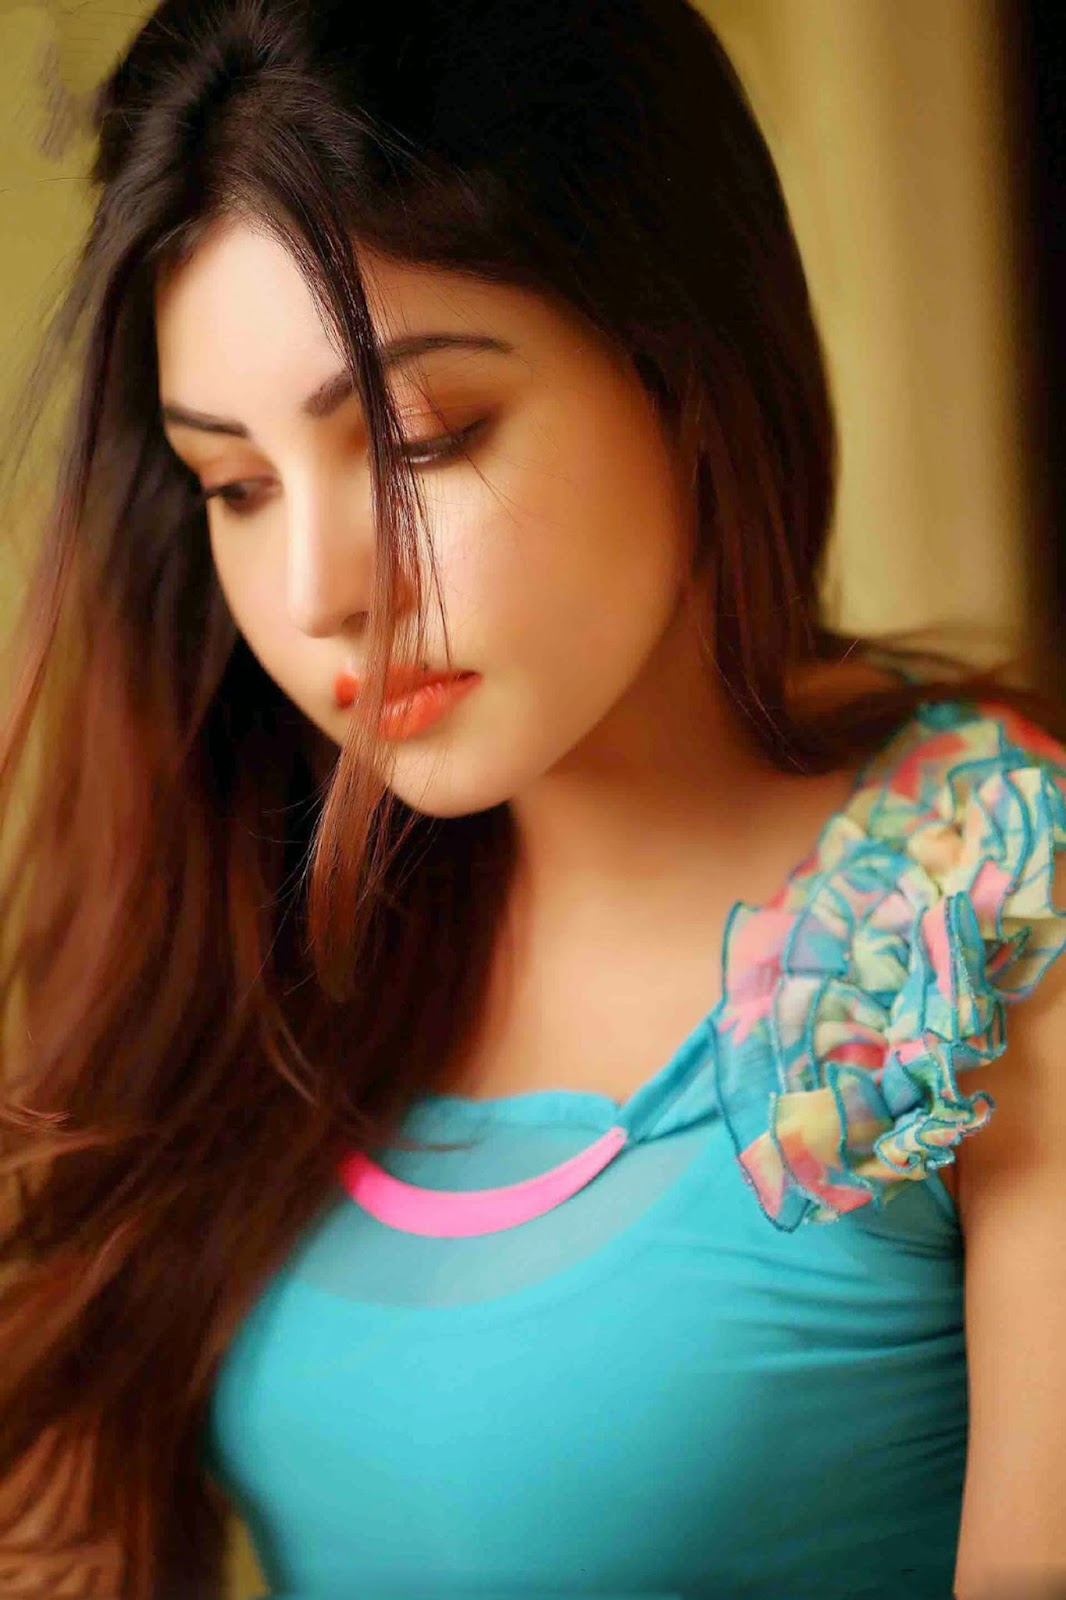 komal jha hd wallpaper - photo #38